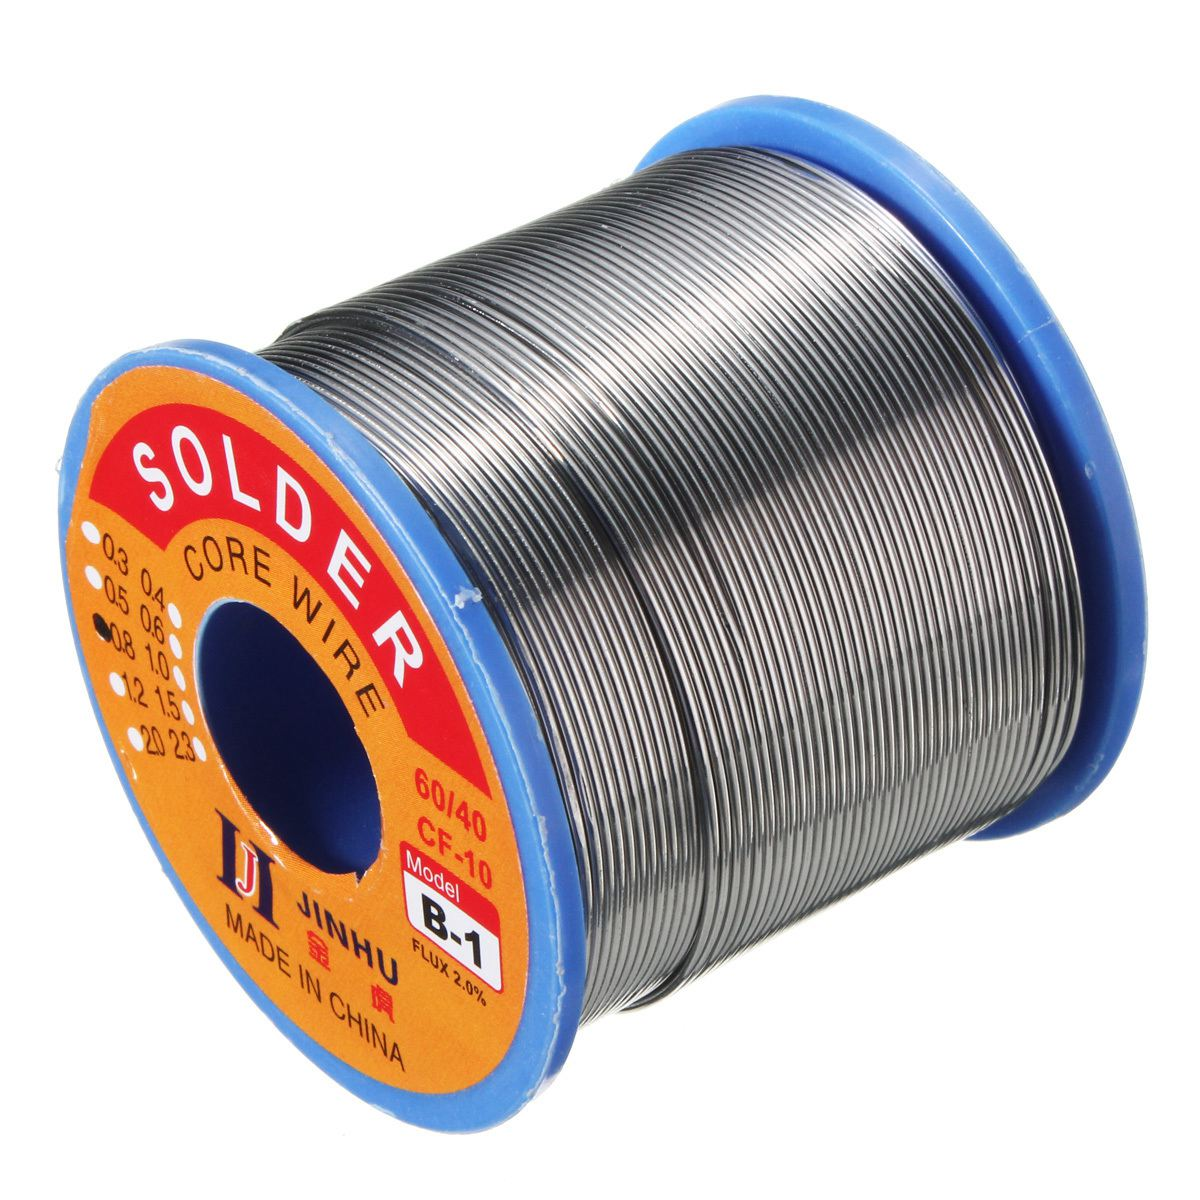 0.5/0.7/1MM <font><b>60/40</b></font> FLUX 2.0% 500g Tin Lead <font><b>Solder</b></font> Wire Melt Rosin Core <font><b>Solder</b></font> Soldering Wire Roll image